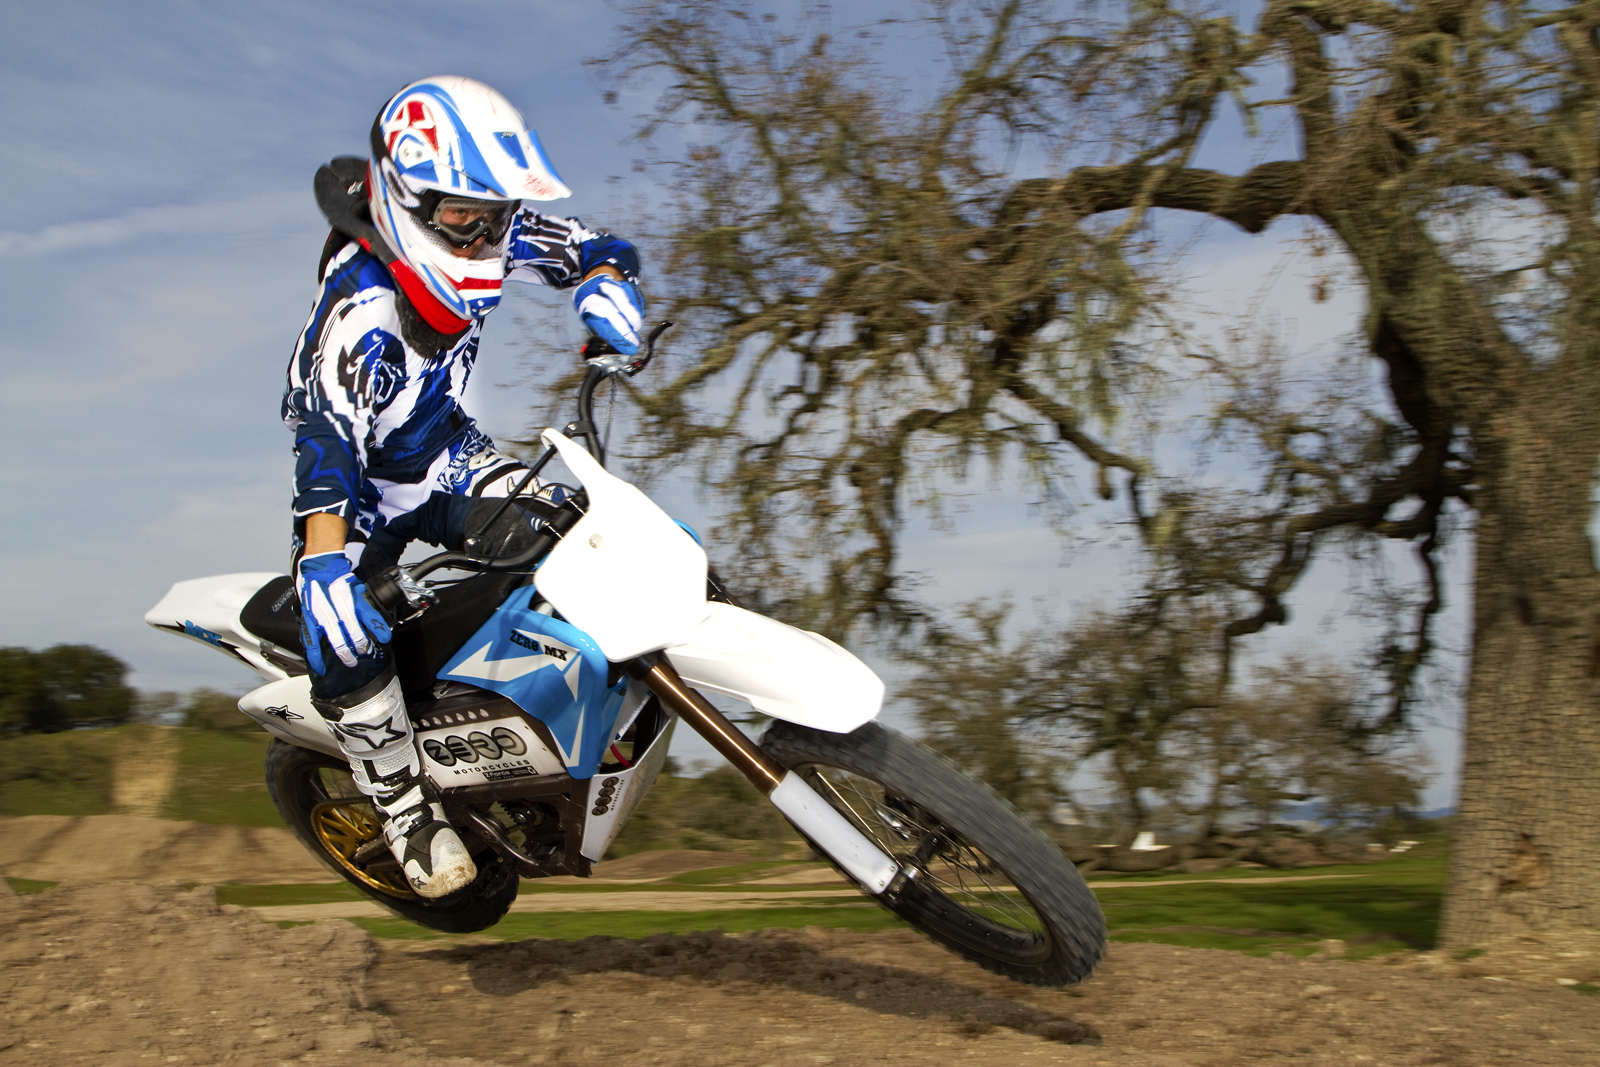 '.2010 Zero MX Electric Motorcycle: Zaca Station - Sideways Jump Inward.'